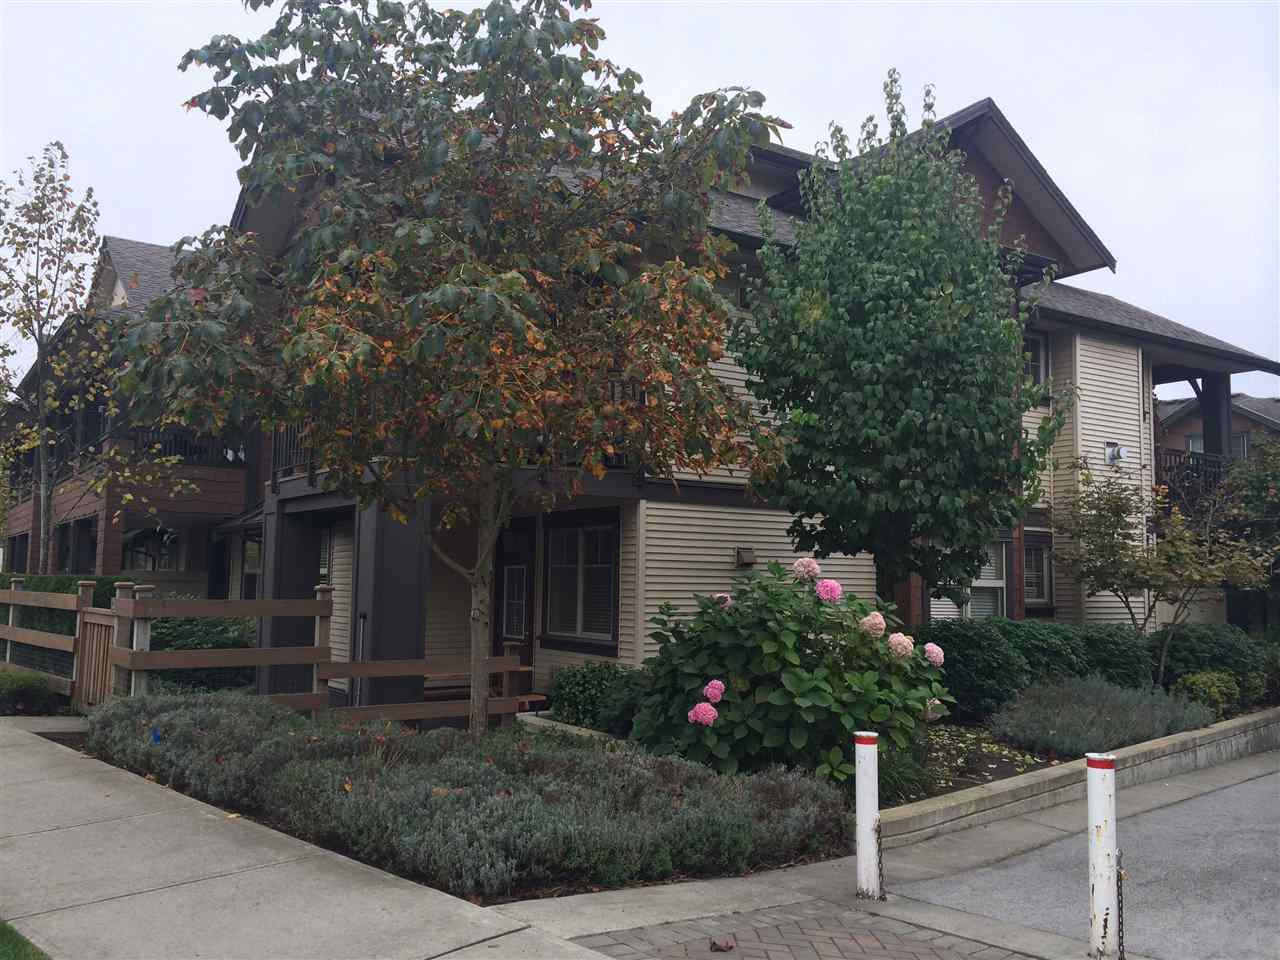 """Main Photo: 41 19478 65 Avenue in Surrey: Clayton Townhouse for sale in """"Sunset Grove"""" (Cloverdale)  : MLS®# R2142025"""